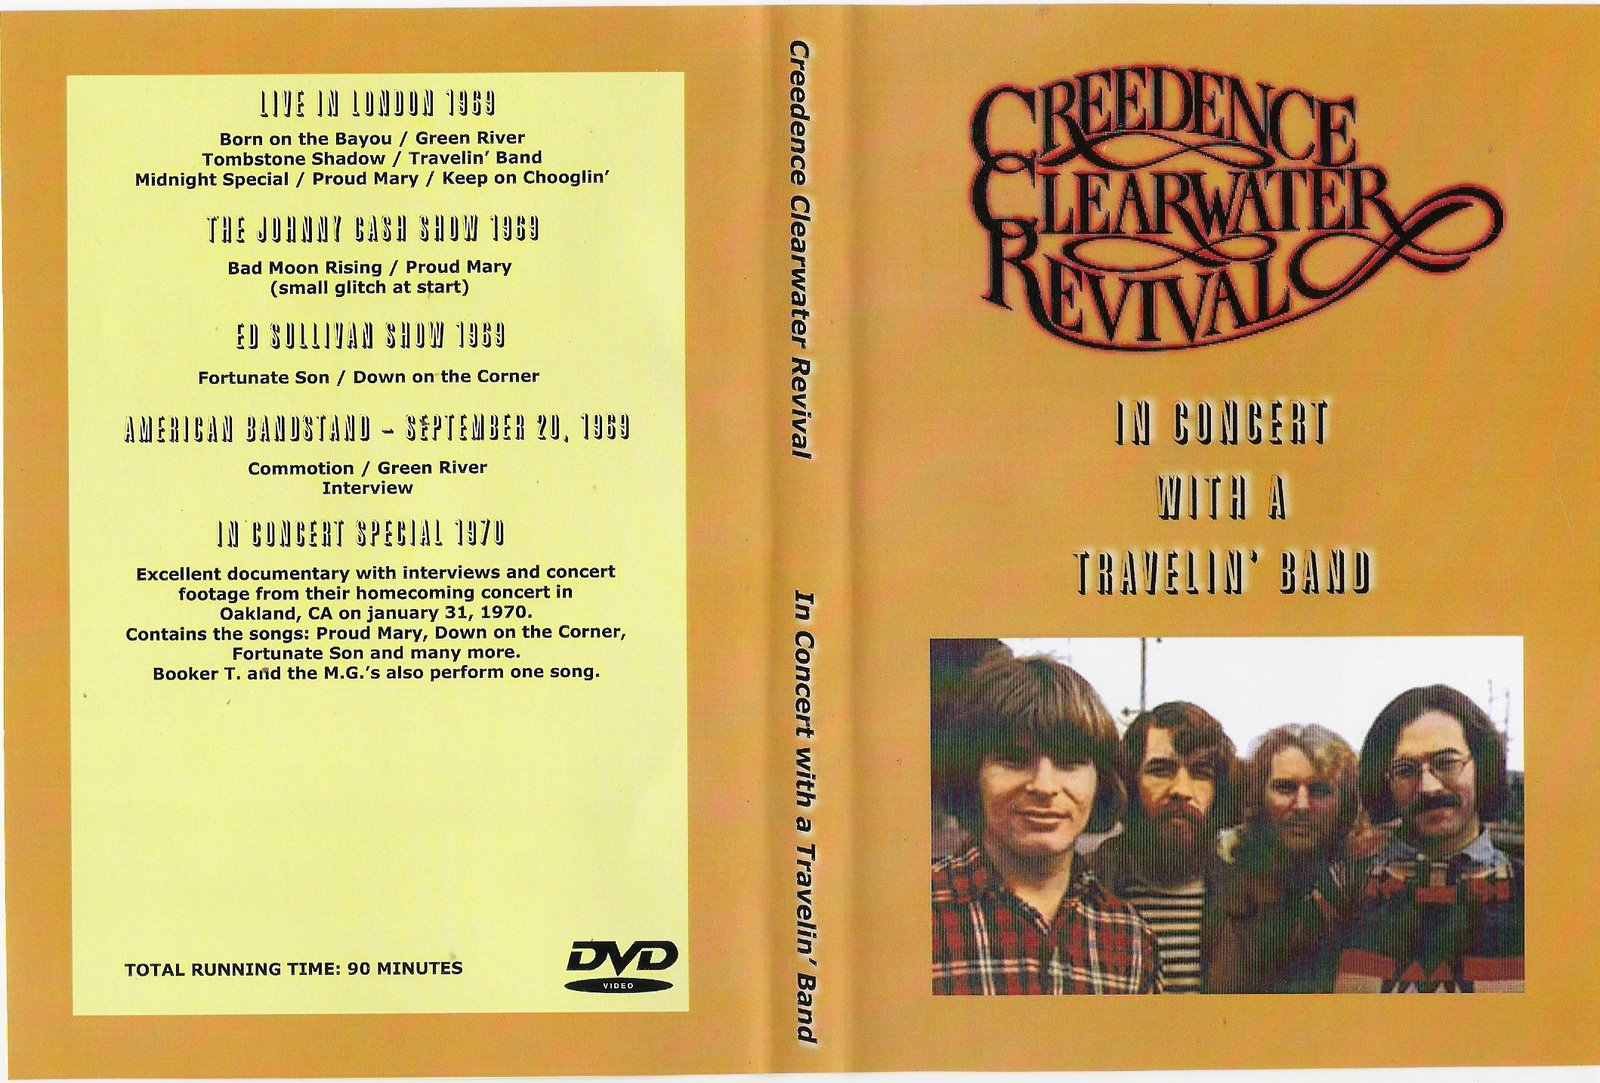 [Creedence+-+In+Concert+With+a+Travelin]